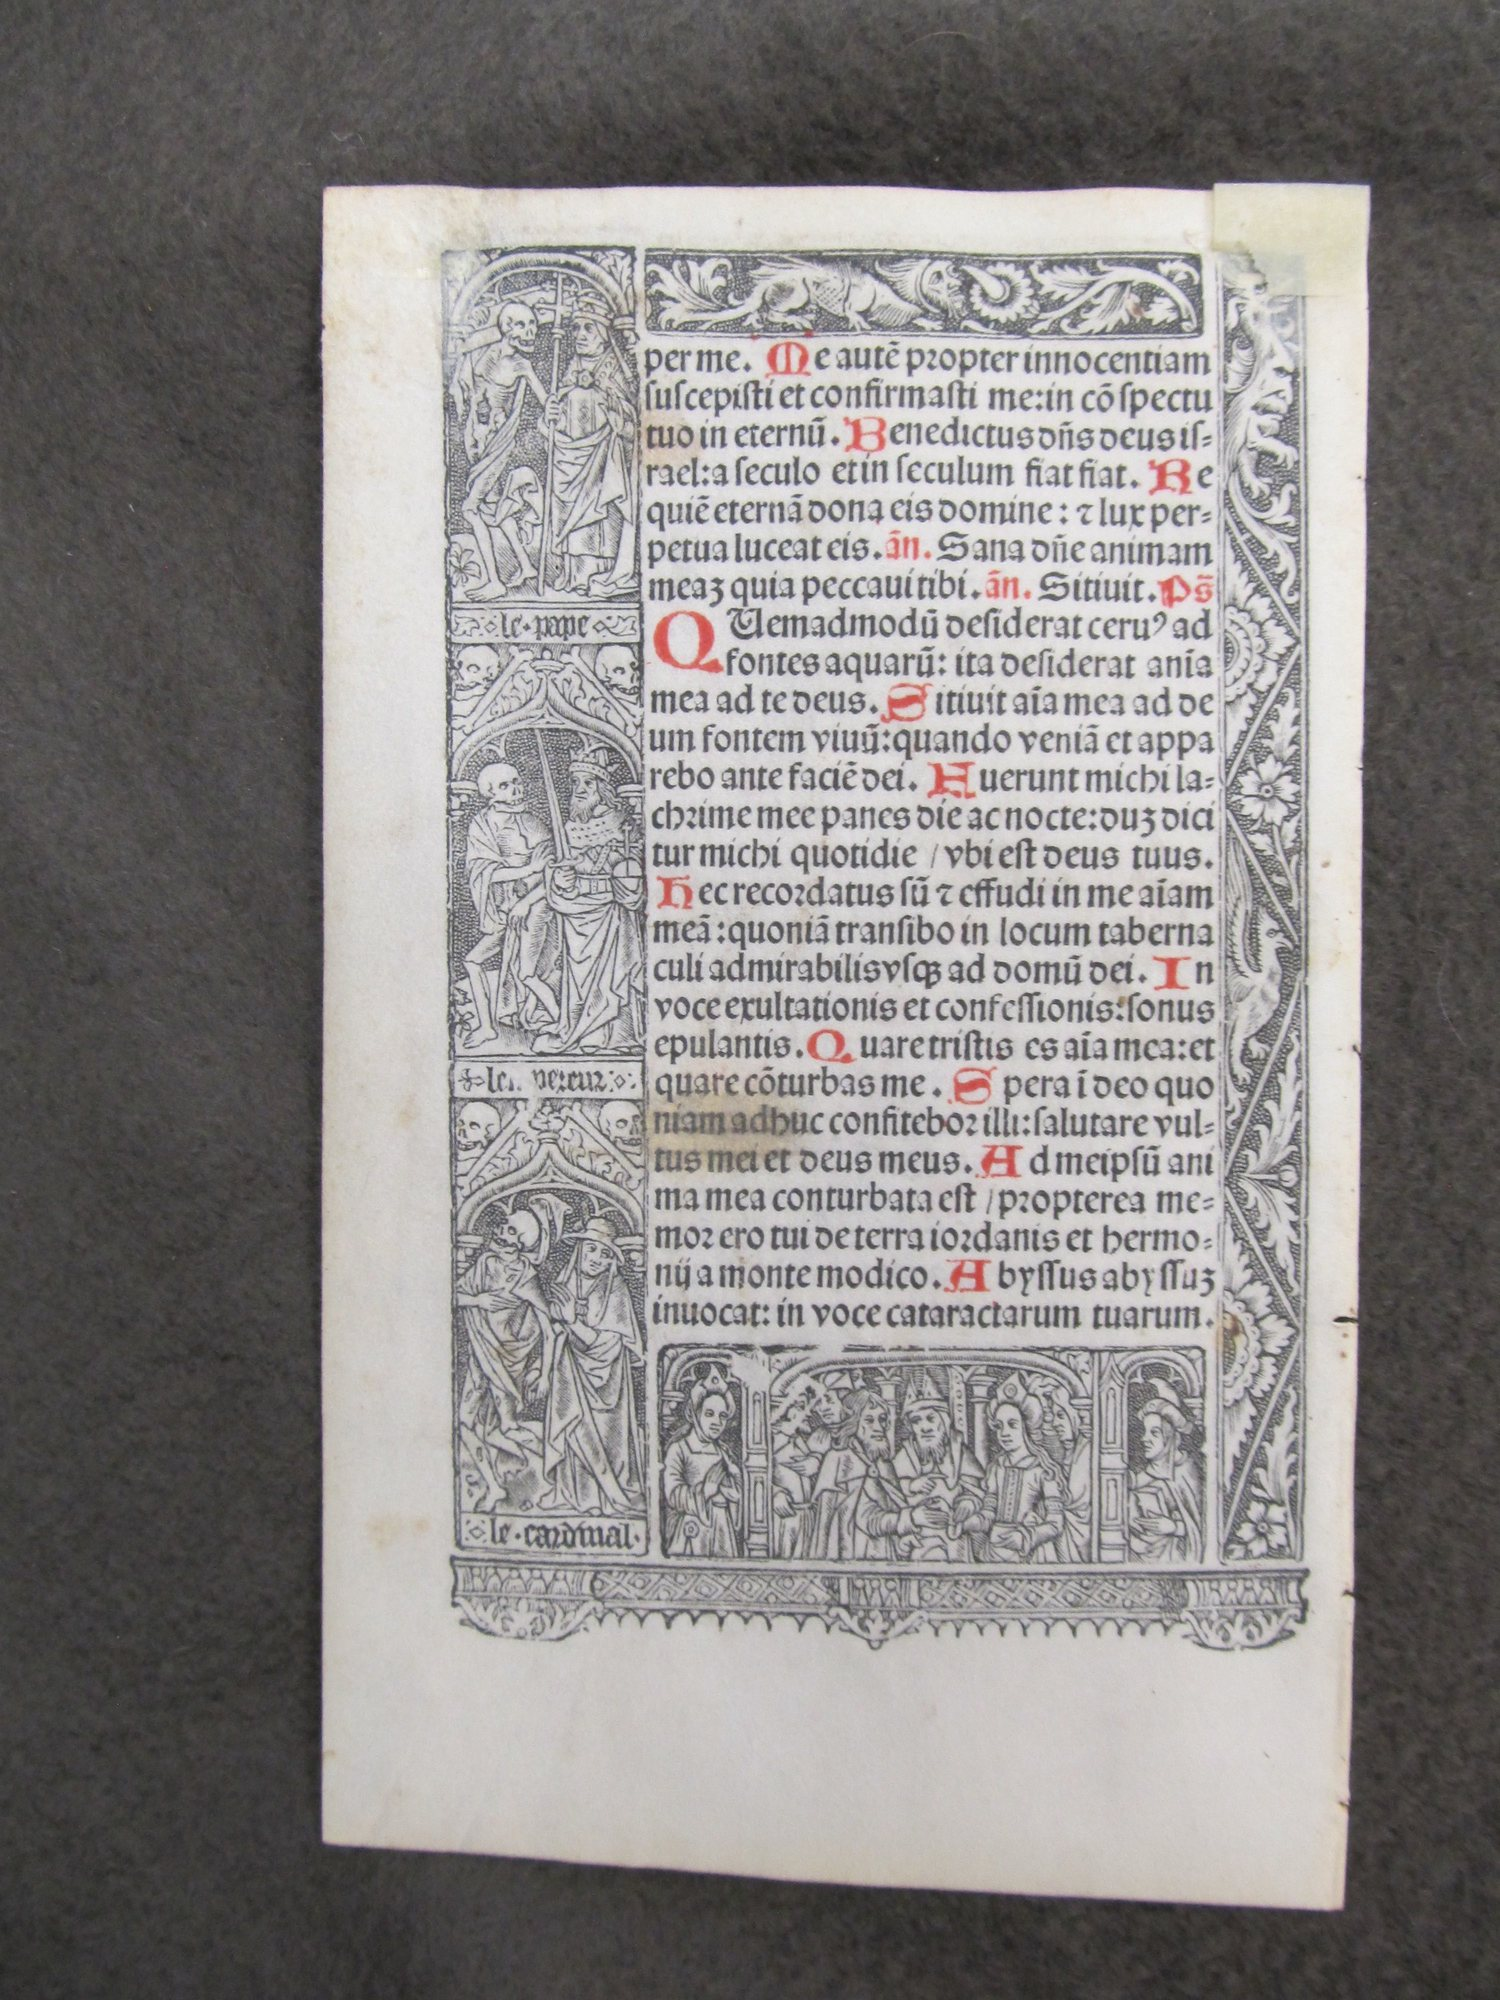 Book of hours. Selections